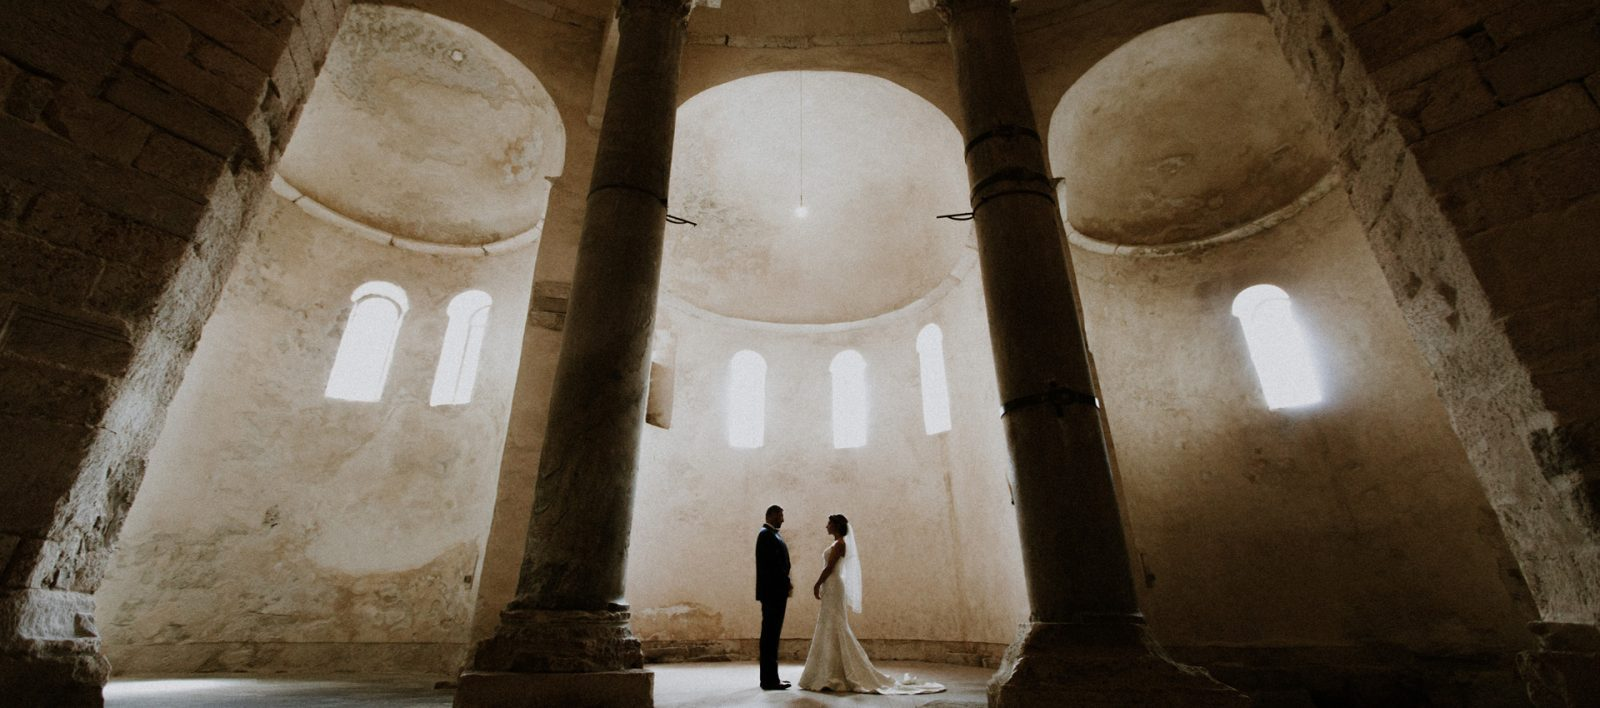 Today, we're bringing you Emma and Stanislav's romantic Elopement in Europe